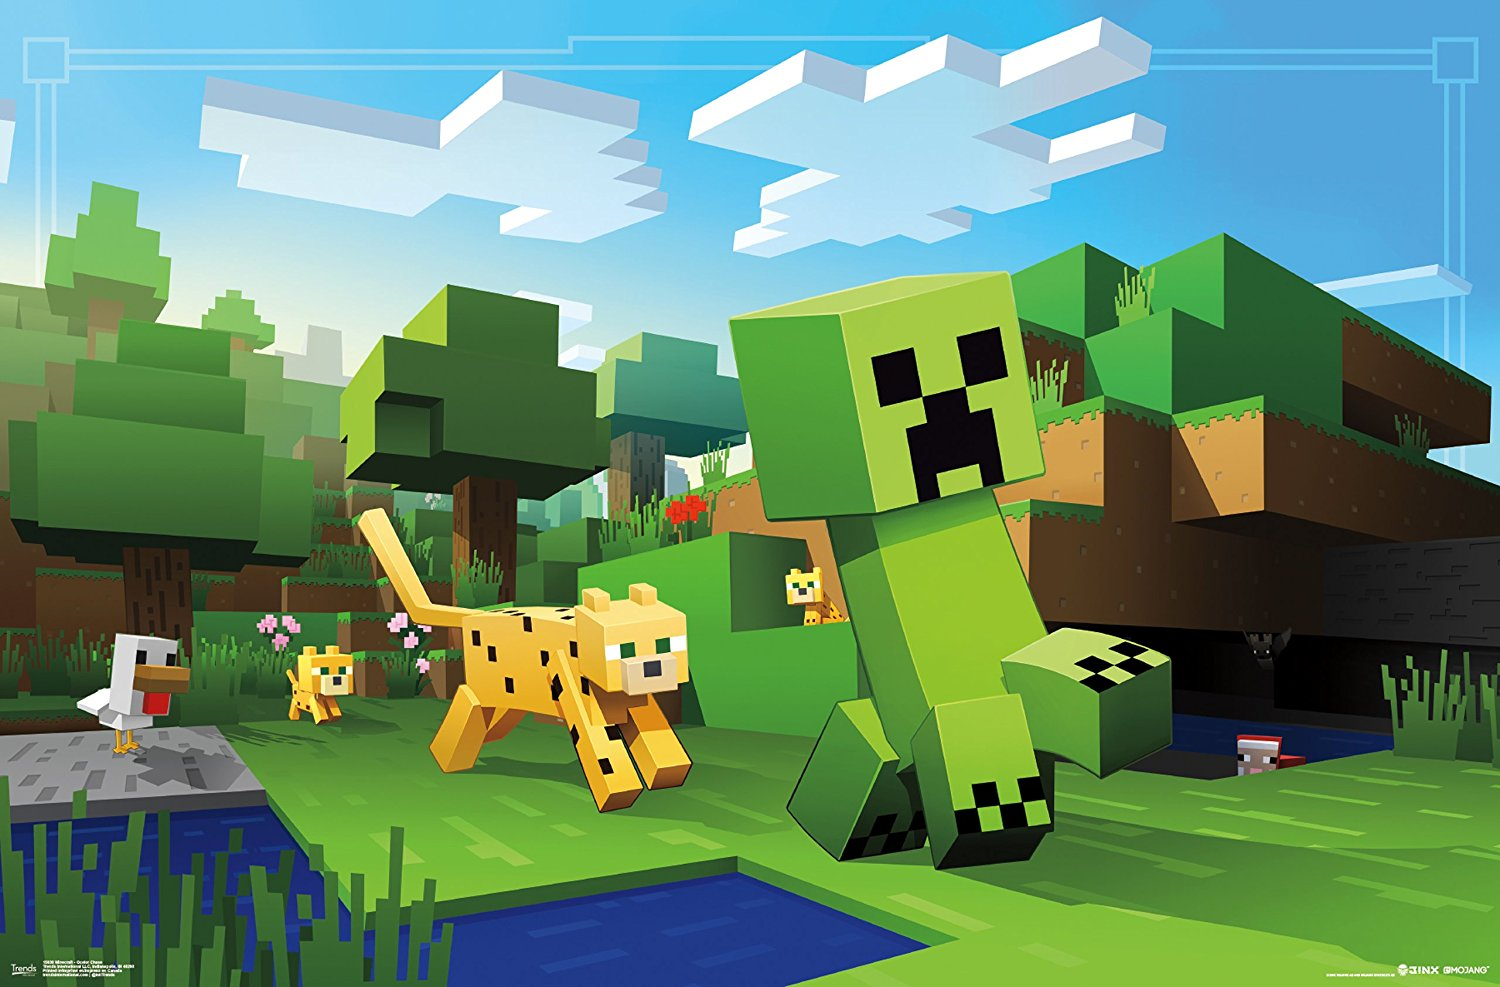 Minecraft Ocelot Chase Video Gaming Poster 34x22 by Trend